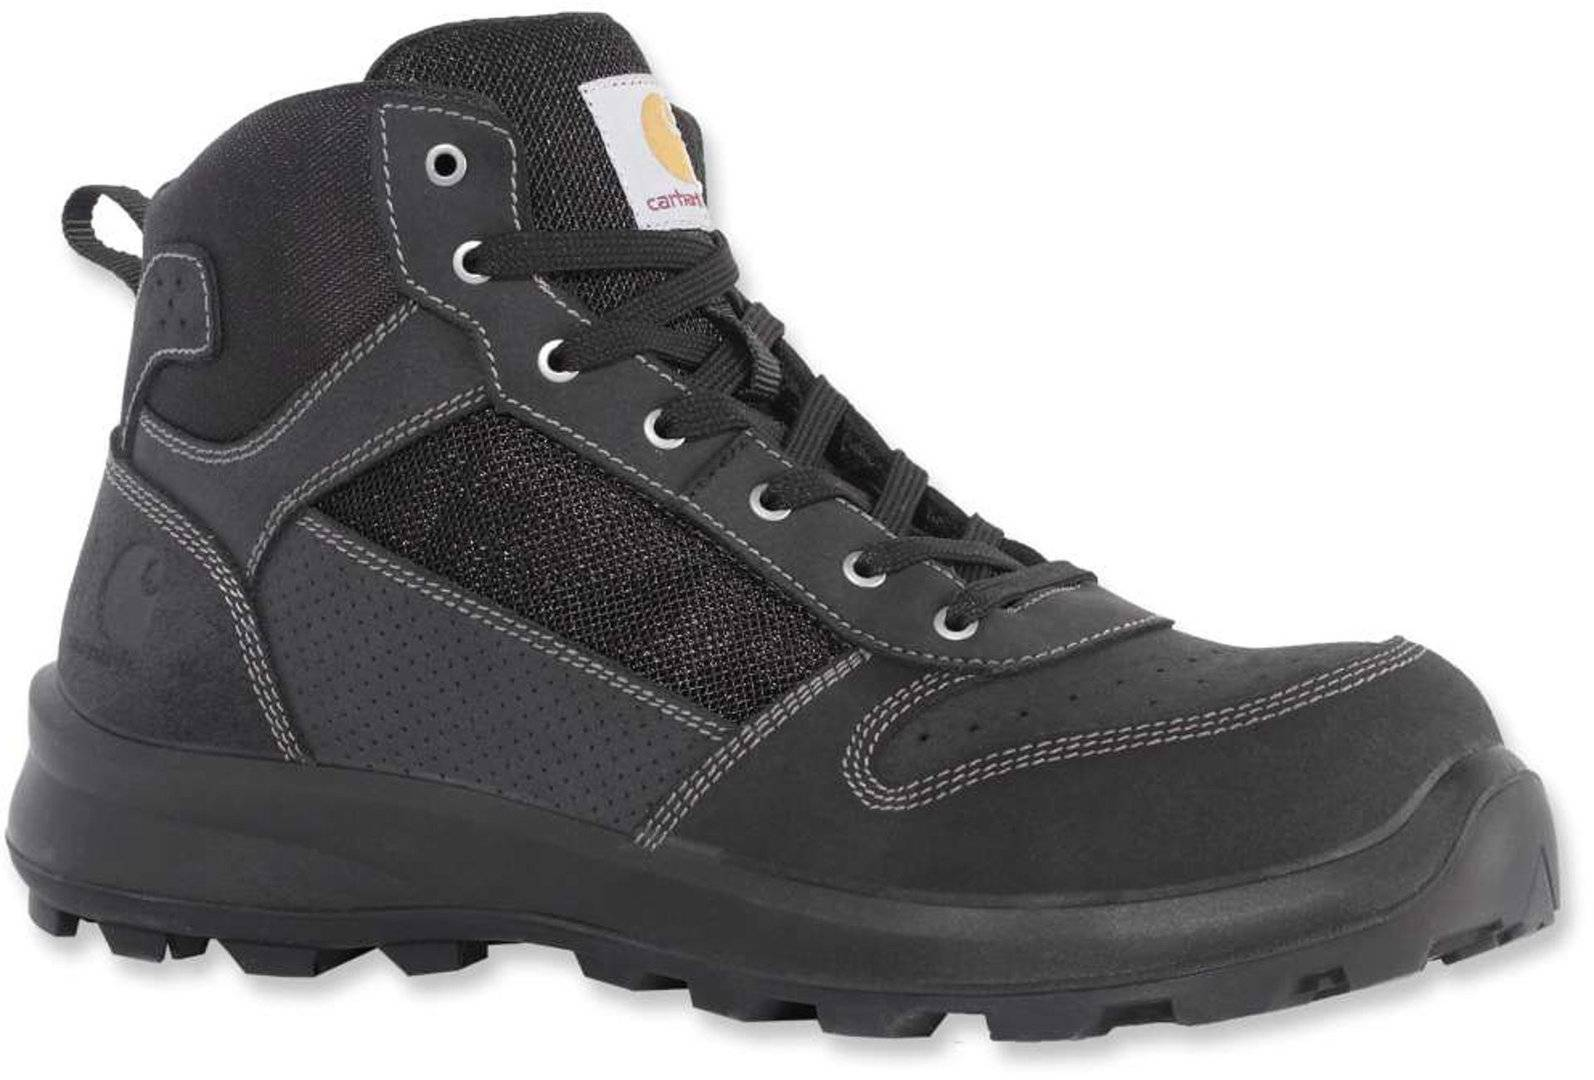 Carhartt Mid S1P Safety Boots Black 46